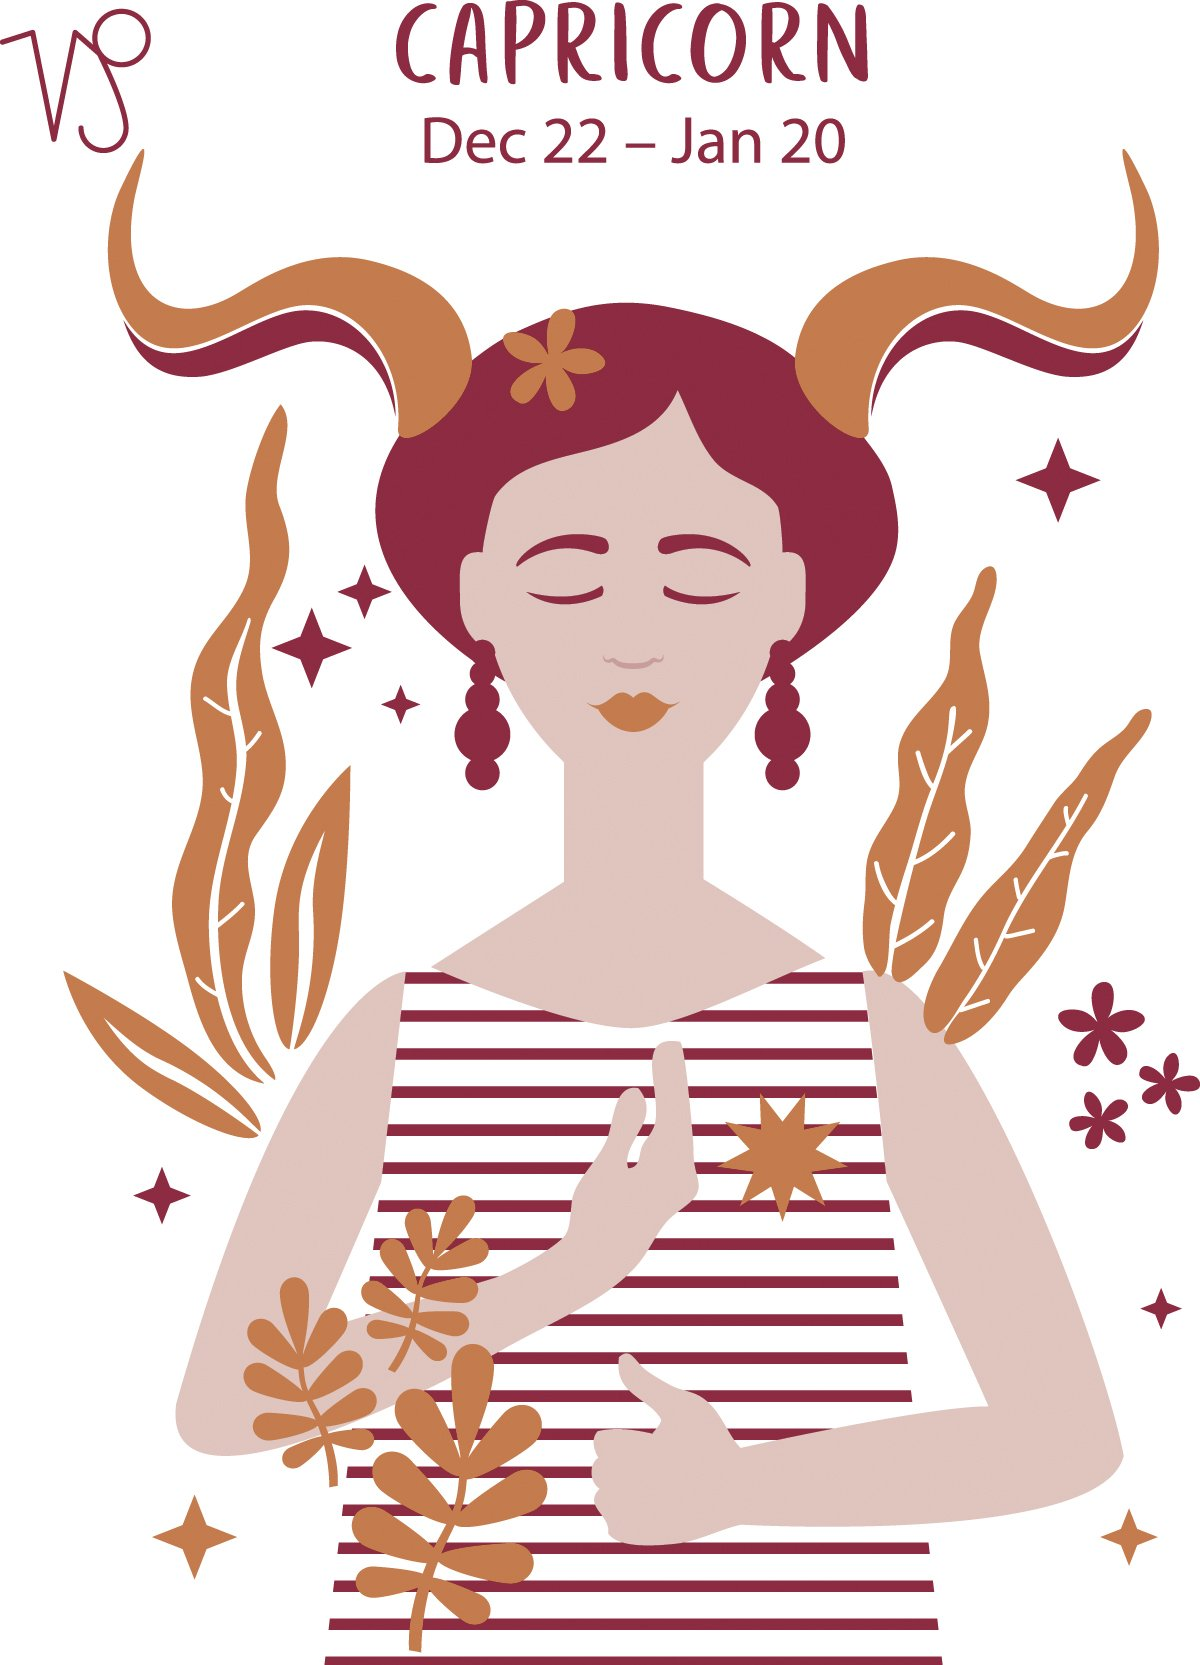 Capricorn (Dec 22 - Jan 20) represented by a woman with horns. | Photo: AmoMama